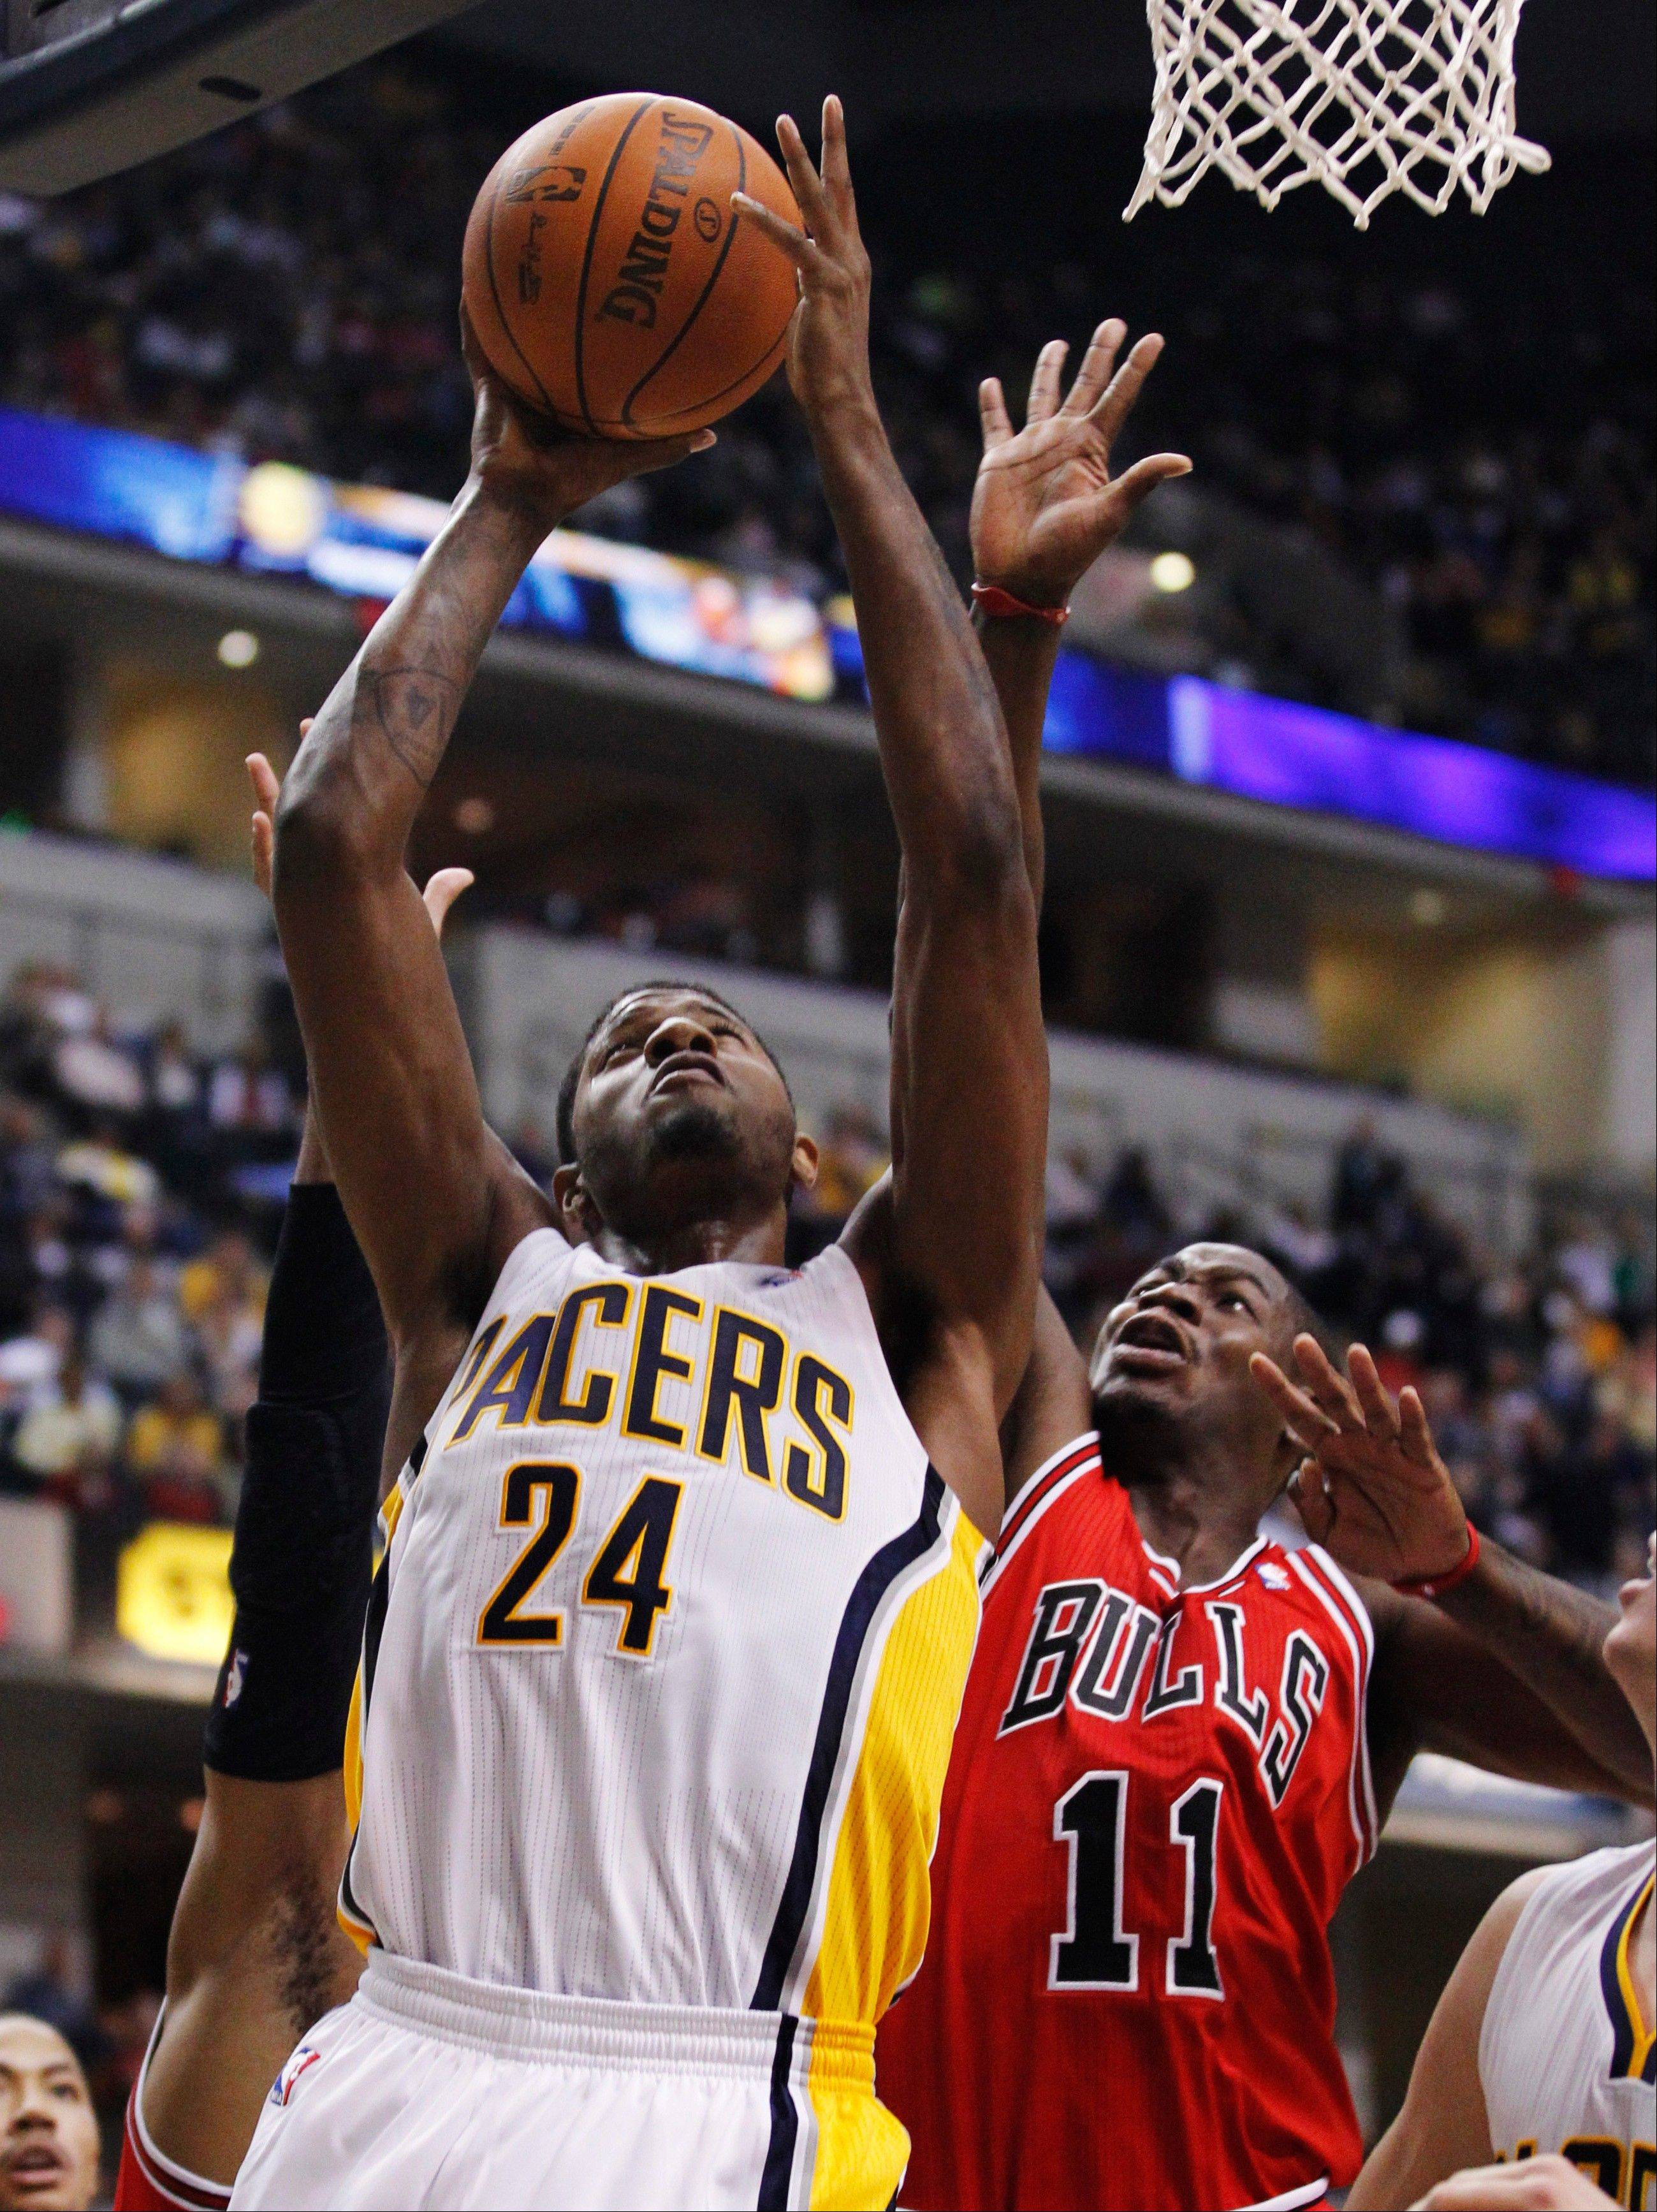 Bulls guard Ronnie Brewer plays some tight defense against Pacers forward Paul George last Friday.